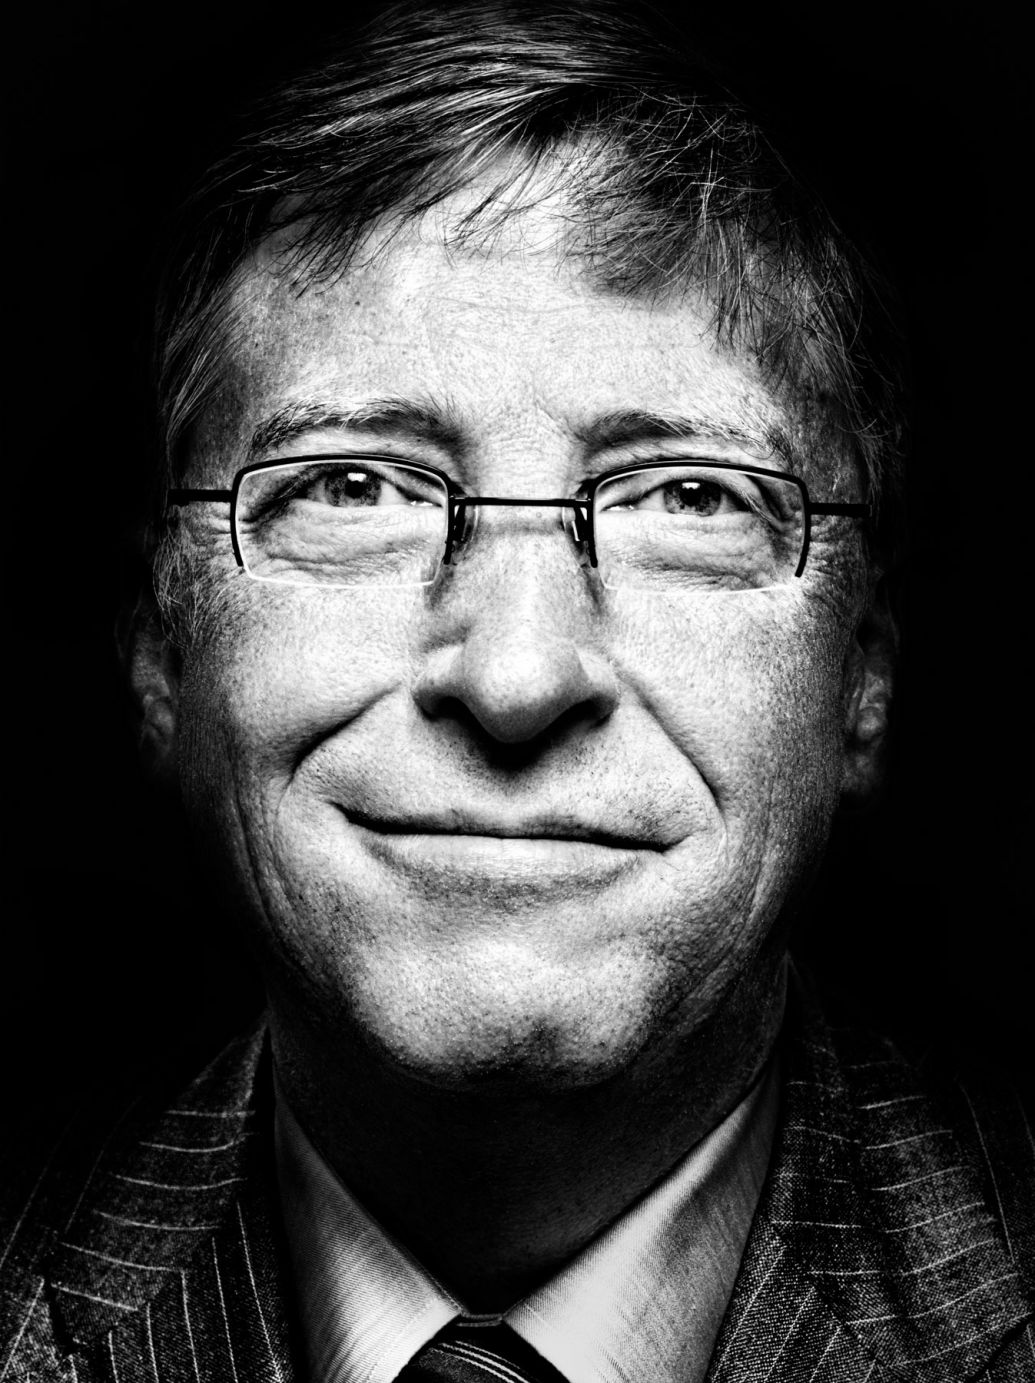 Abstract The Art of Design por Netflix o Fotógrafo Platon Bill Gates